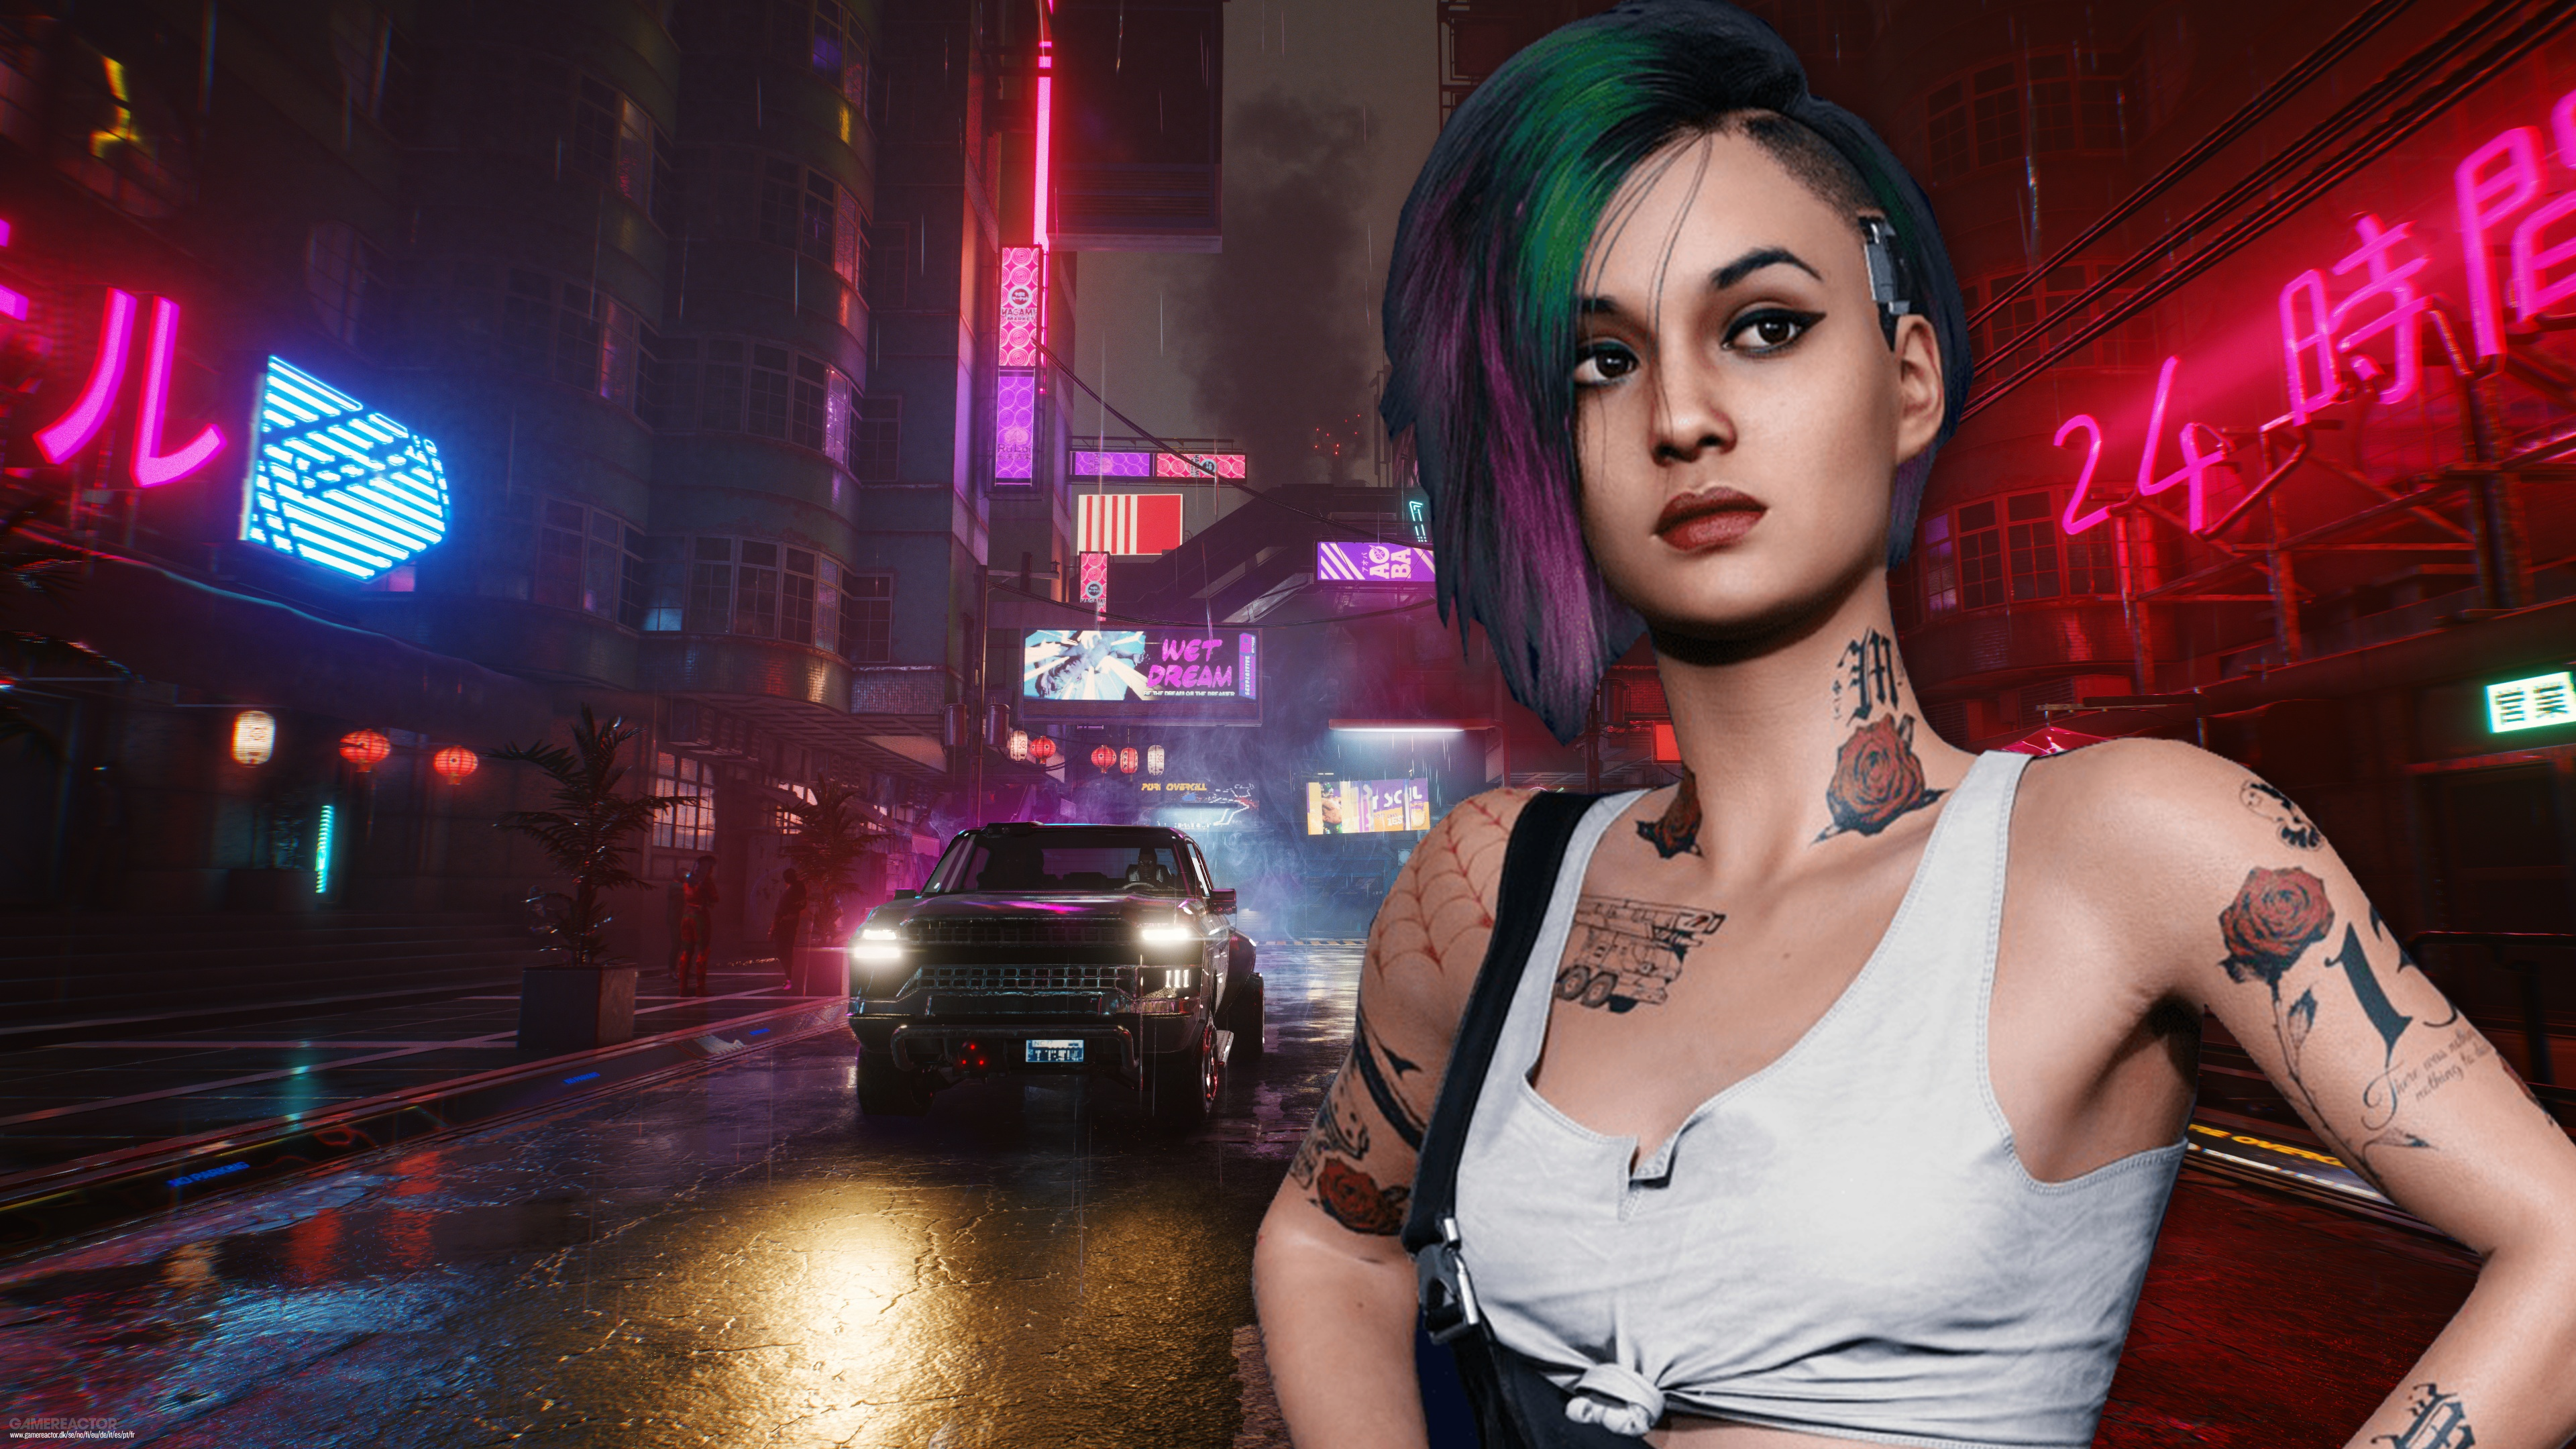 Cyberpunk 2077: Players Report New Bugs After Patch 1.2